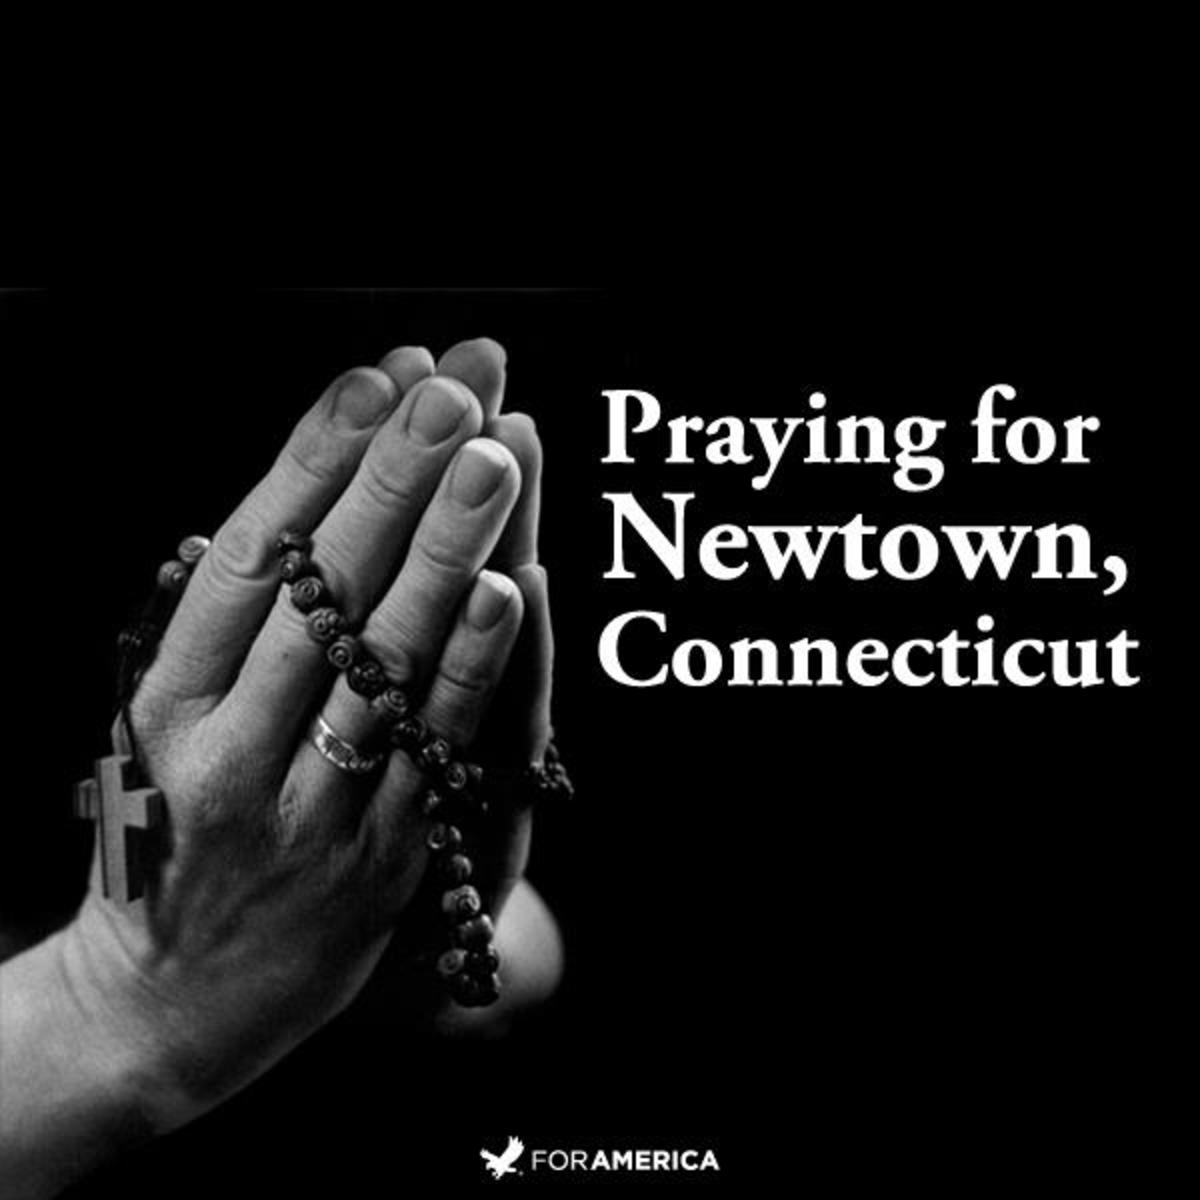 Praying for Newtown Connecticut